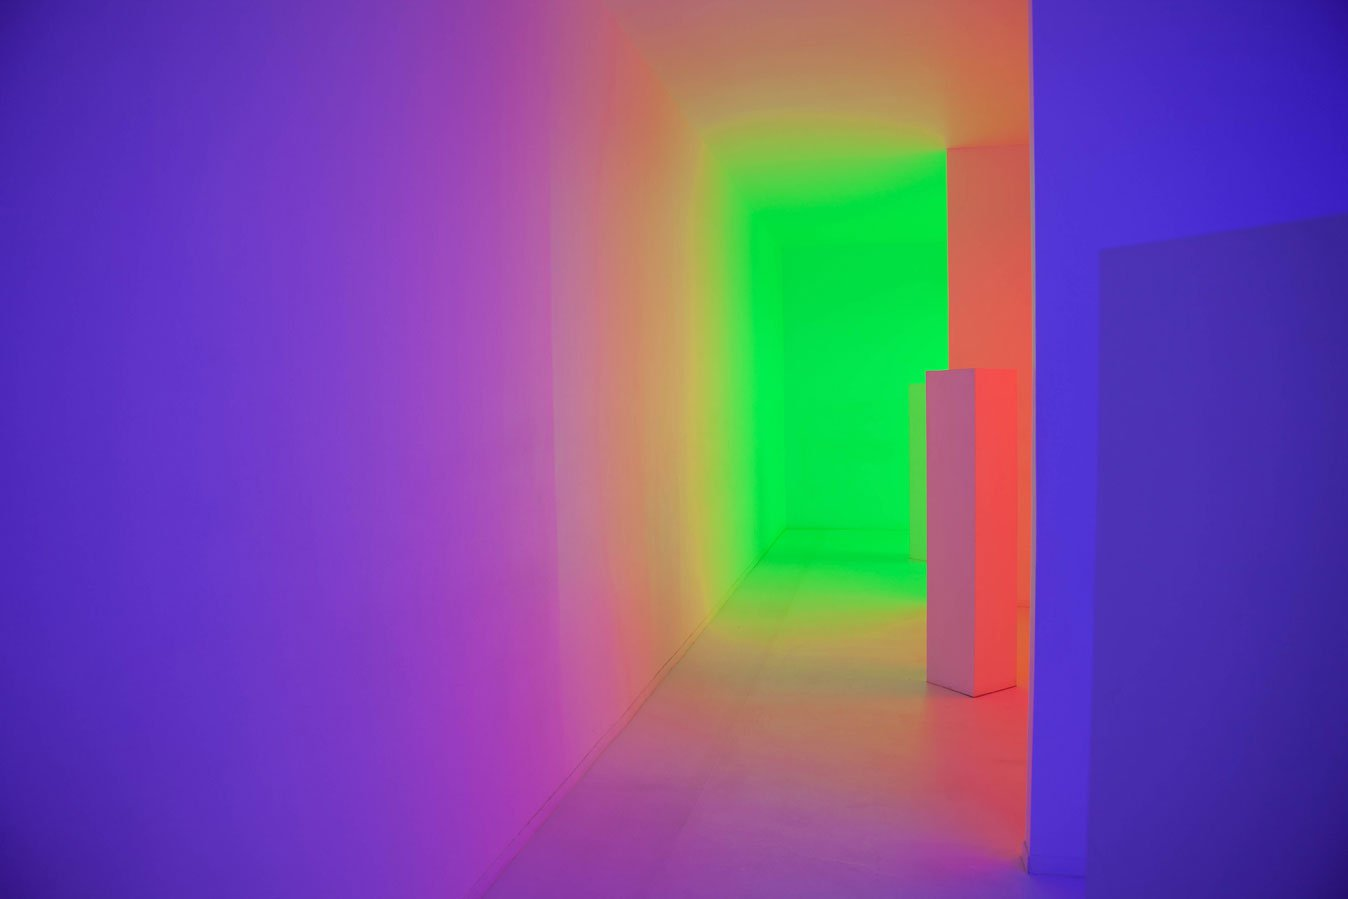 Artwork by Carlos Cruz-Diez at UNAM's MUAC